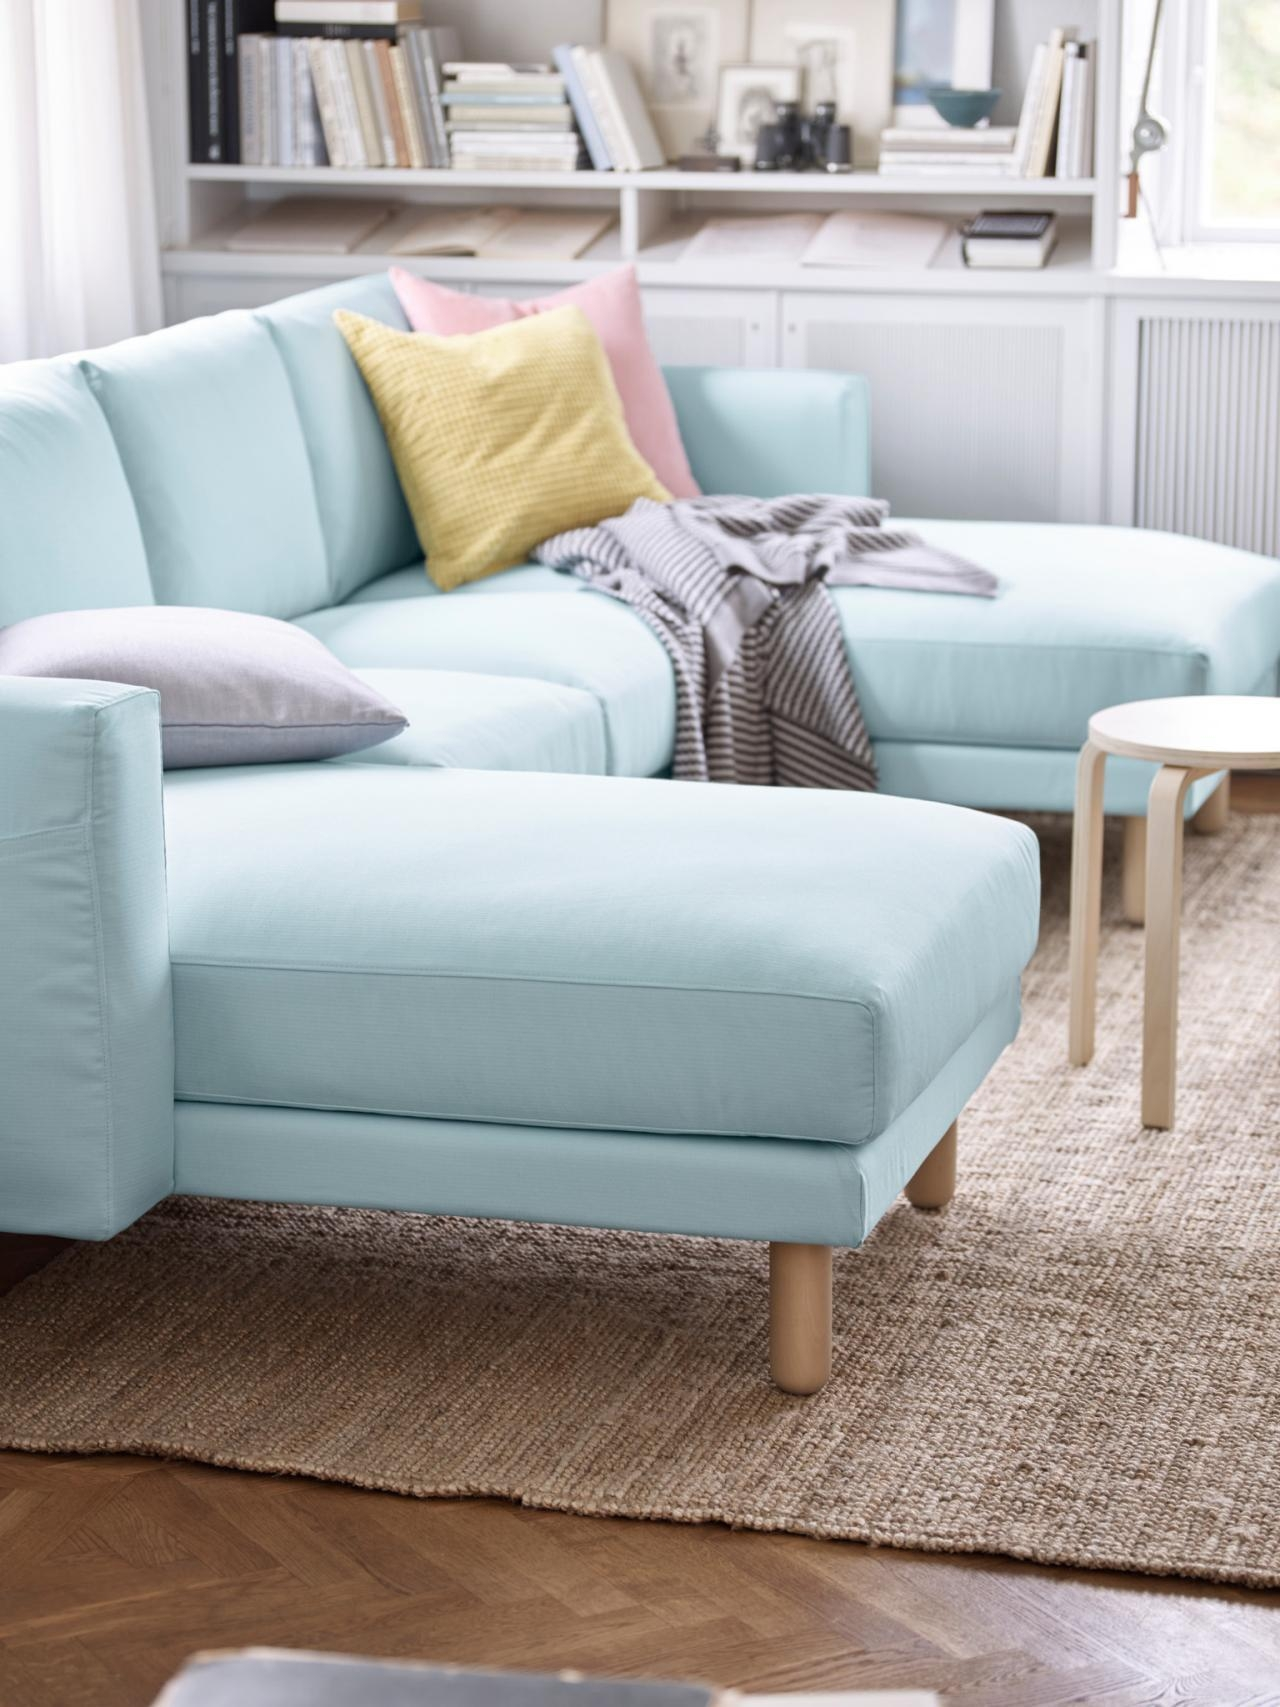 5 Apartment Sized Sofas That Are Lifesavers | Hgtv's Decorating regarding Apartment Sectional